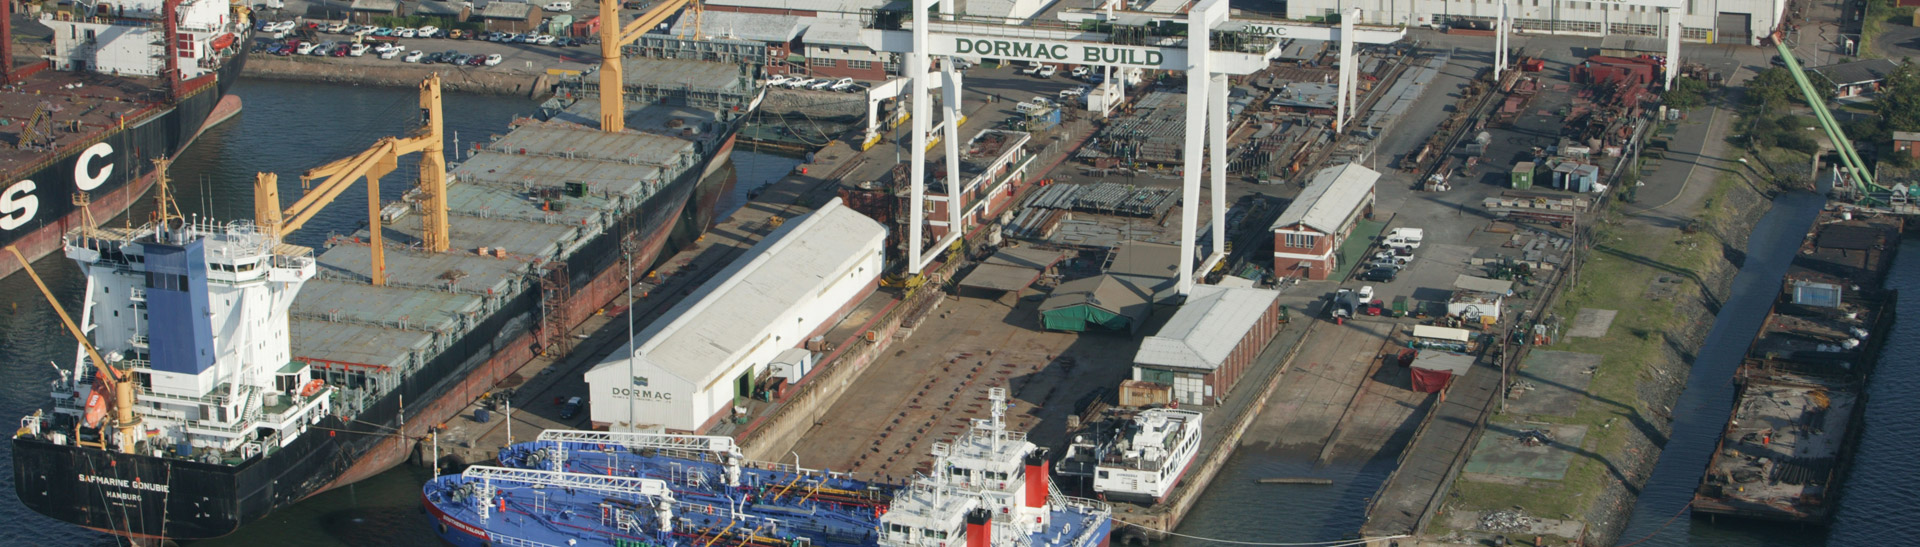 About Dormac Ship Repair